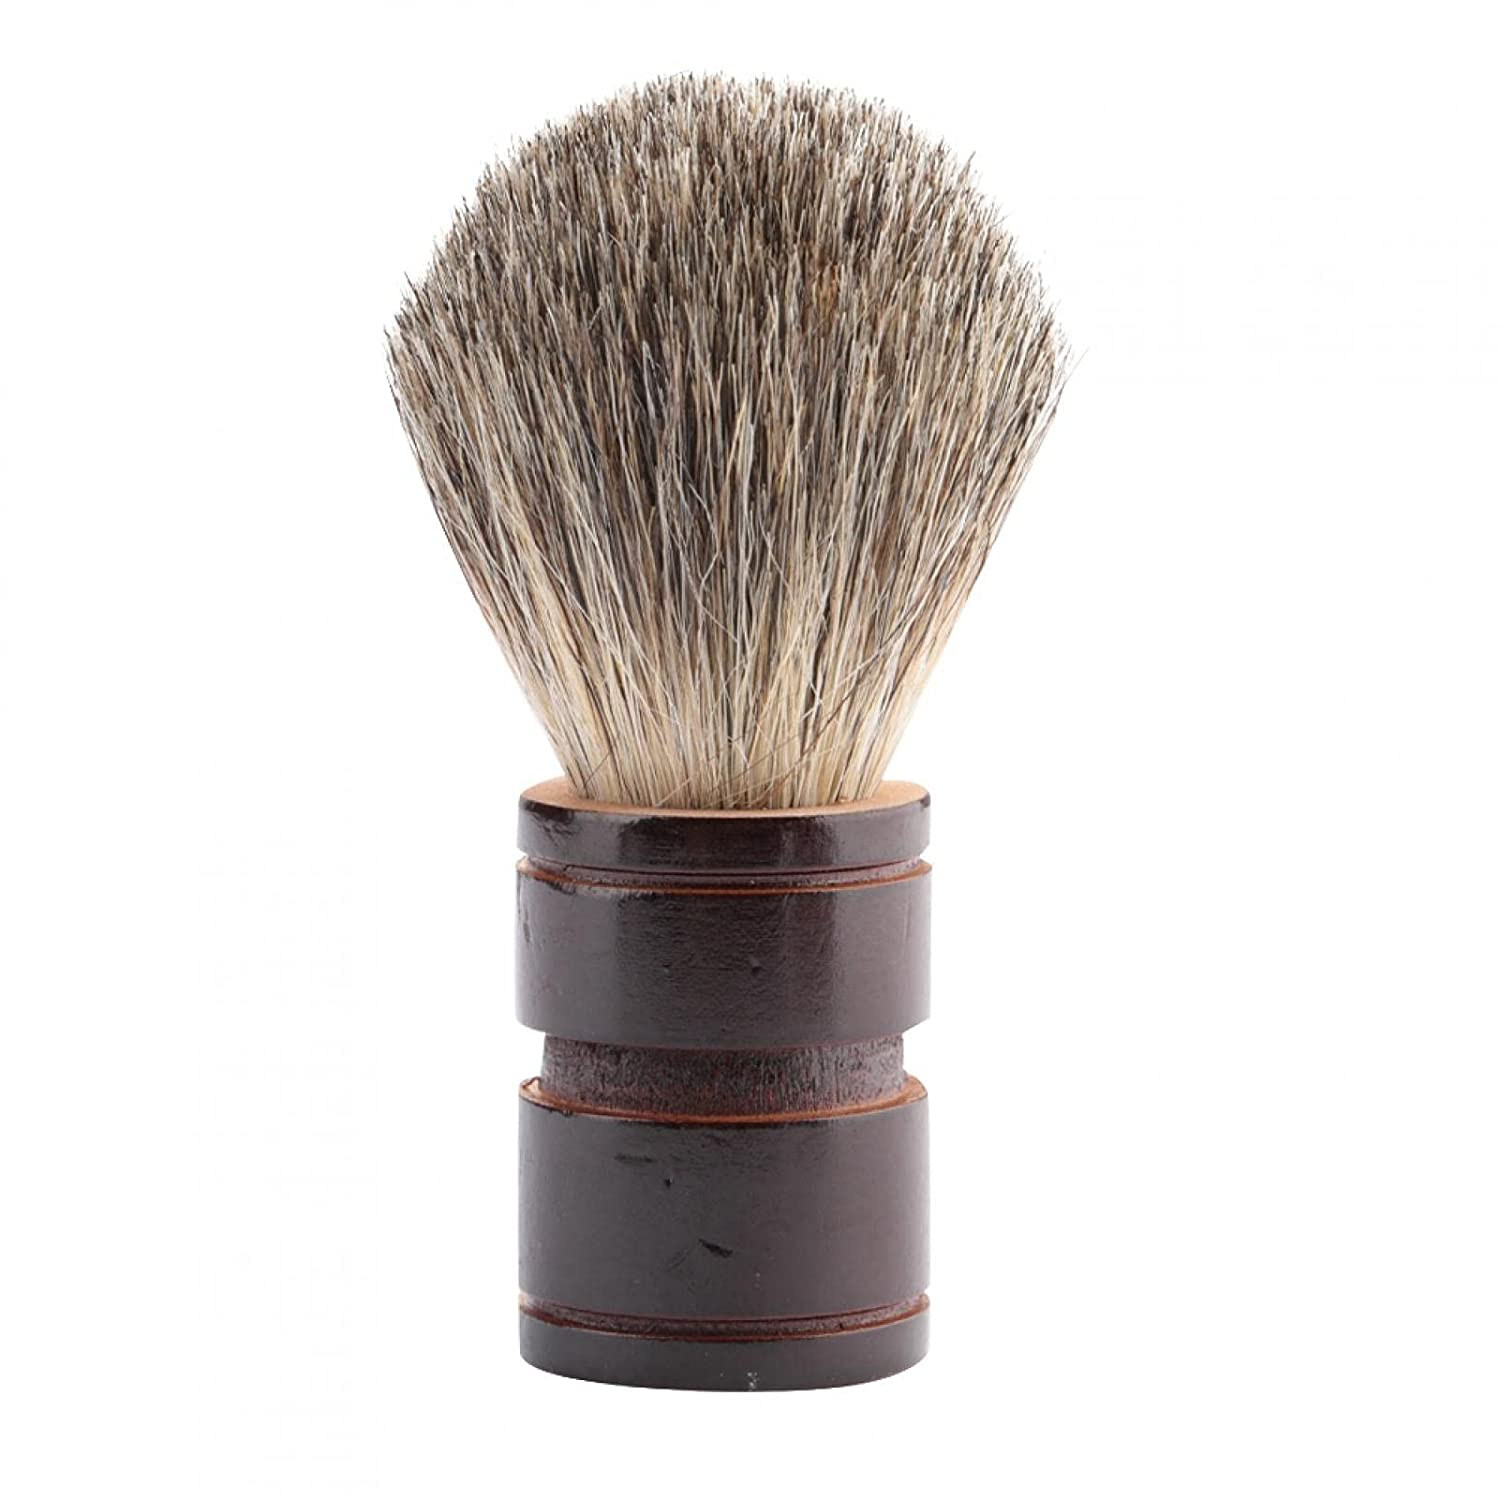 Shaving Brush Men Ranking TOP2 Soft For Hair Max 81% OFF Shave Synt Removal